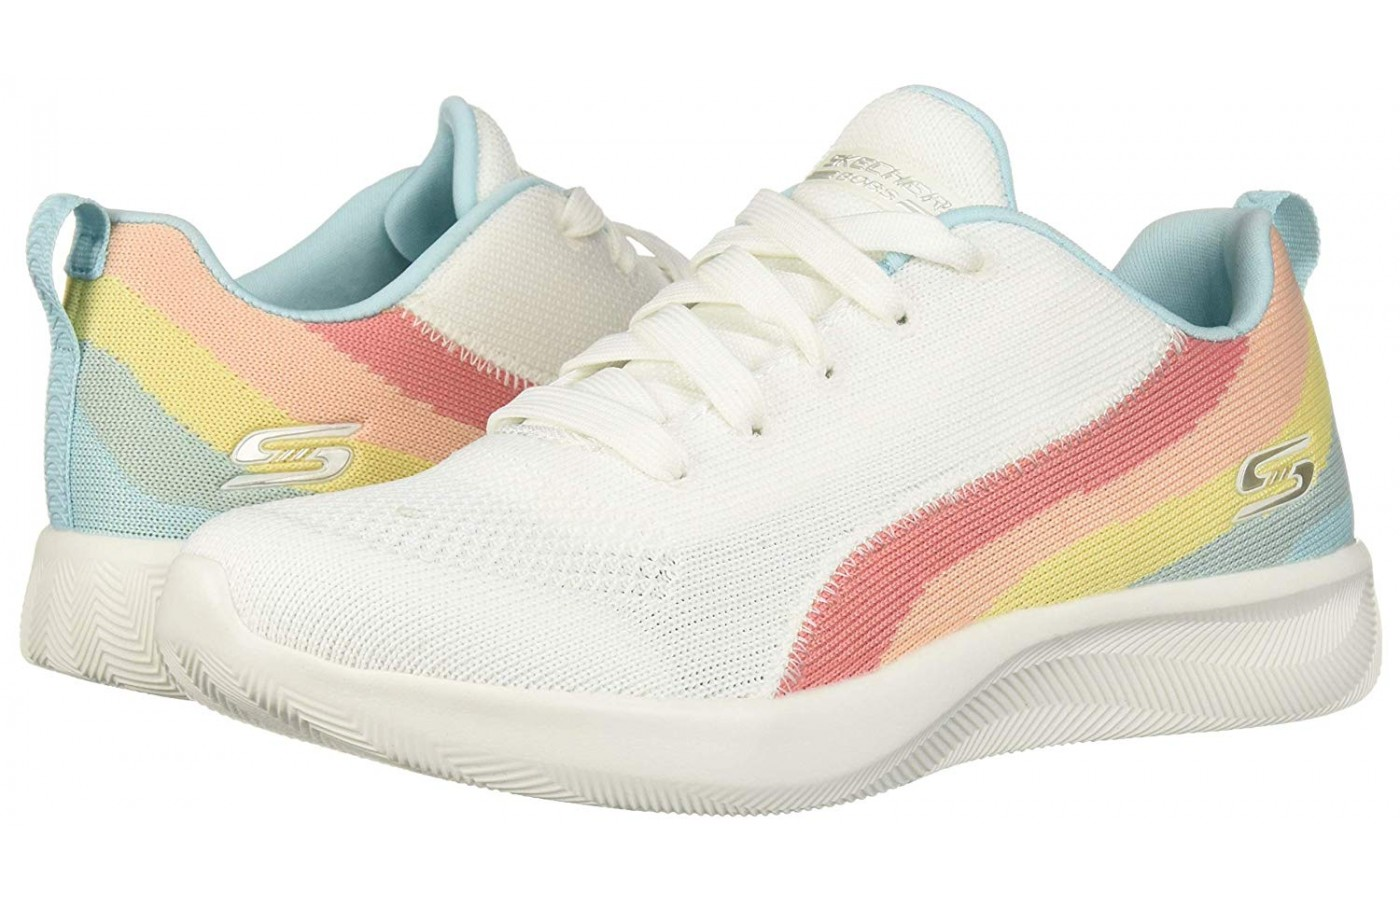 Skechers BOBS Squad 2 Reviewed for